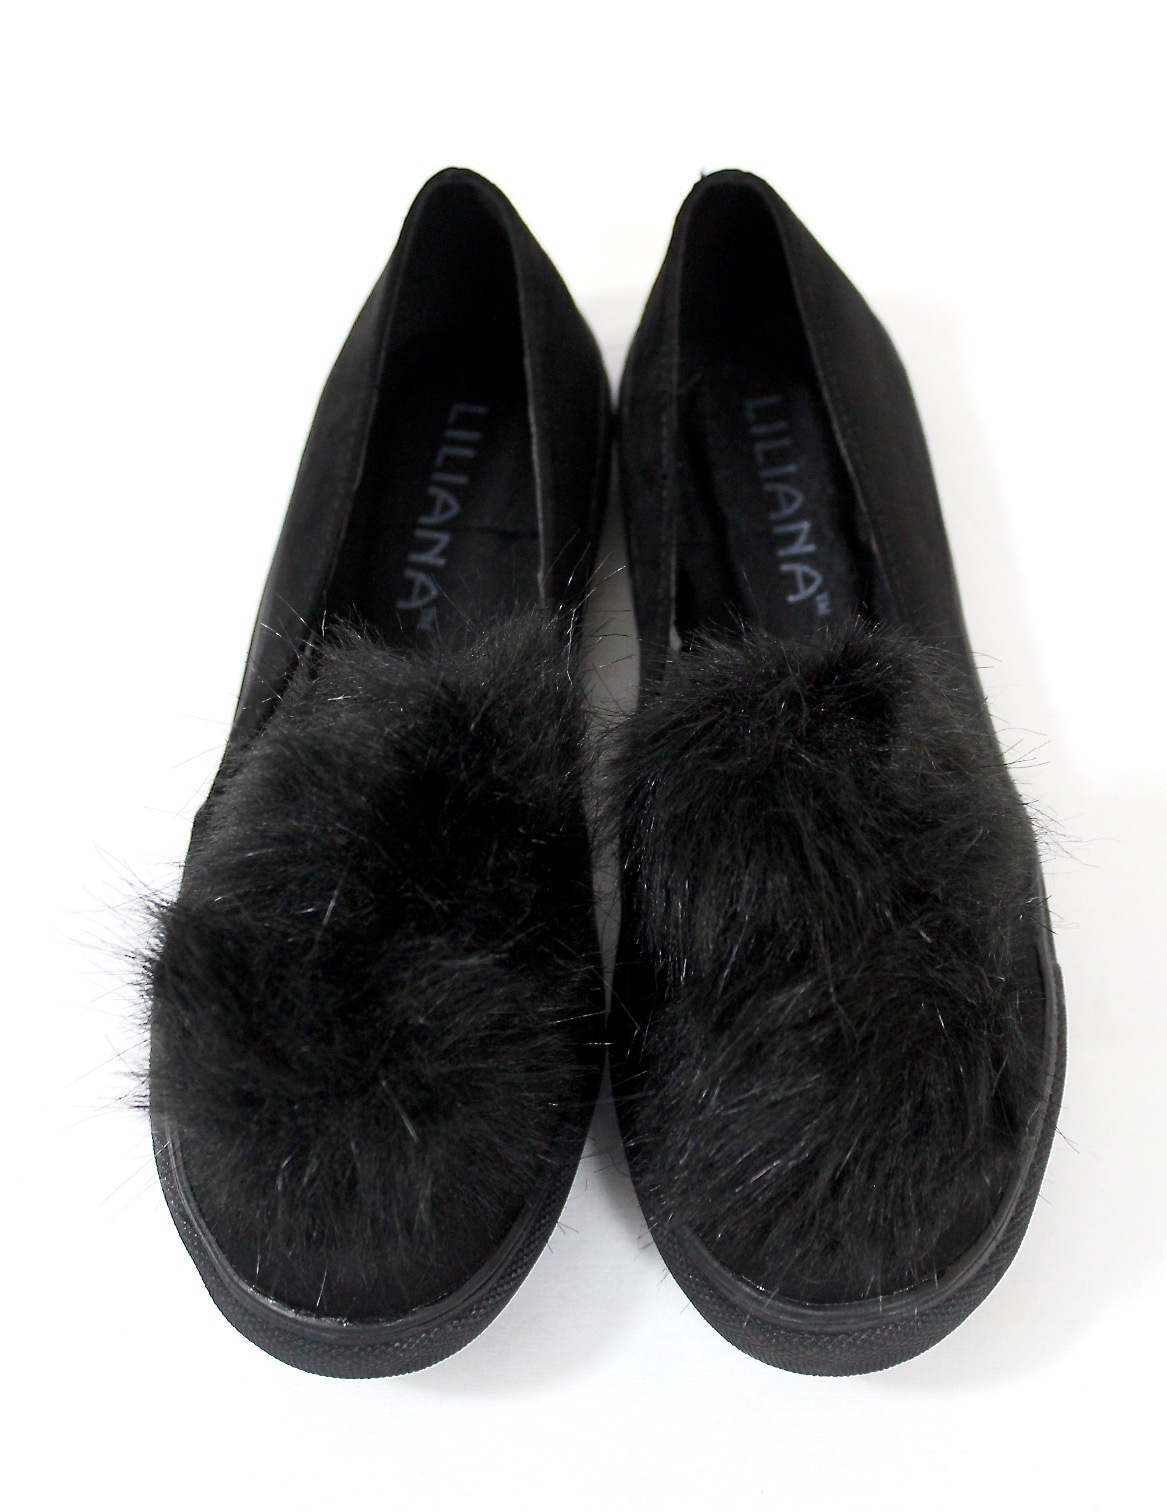 Liliana Bailey-1 Black Flat Slip On Faux Fur Ball Pom Pom Round Toe Sneakers-0